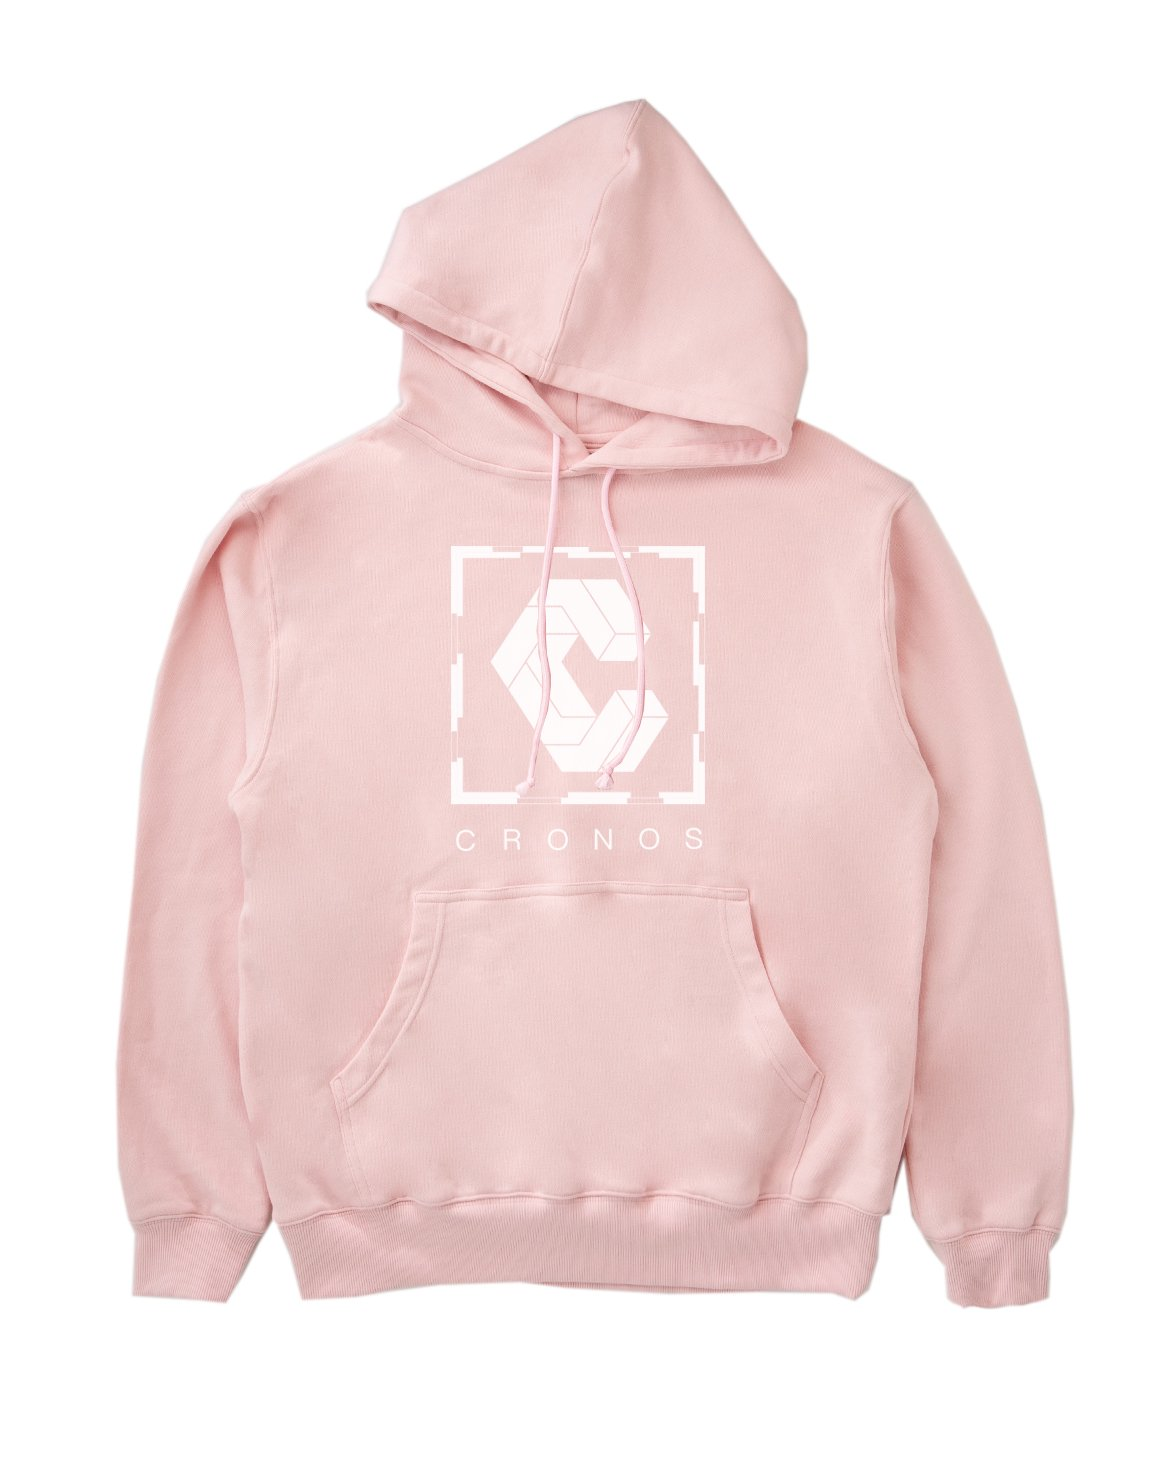 <img class='new_mark_img1' src='https://img.shop-pro.jp/img/new/icons1.gif' style='border:none;display:inline;margin:0px;padding:0px;width:auto;' />CRONOS SQUARE LOGO  PARKA 【PINK】